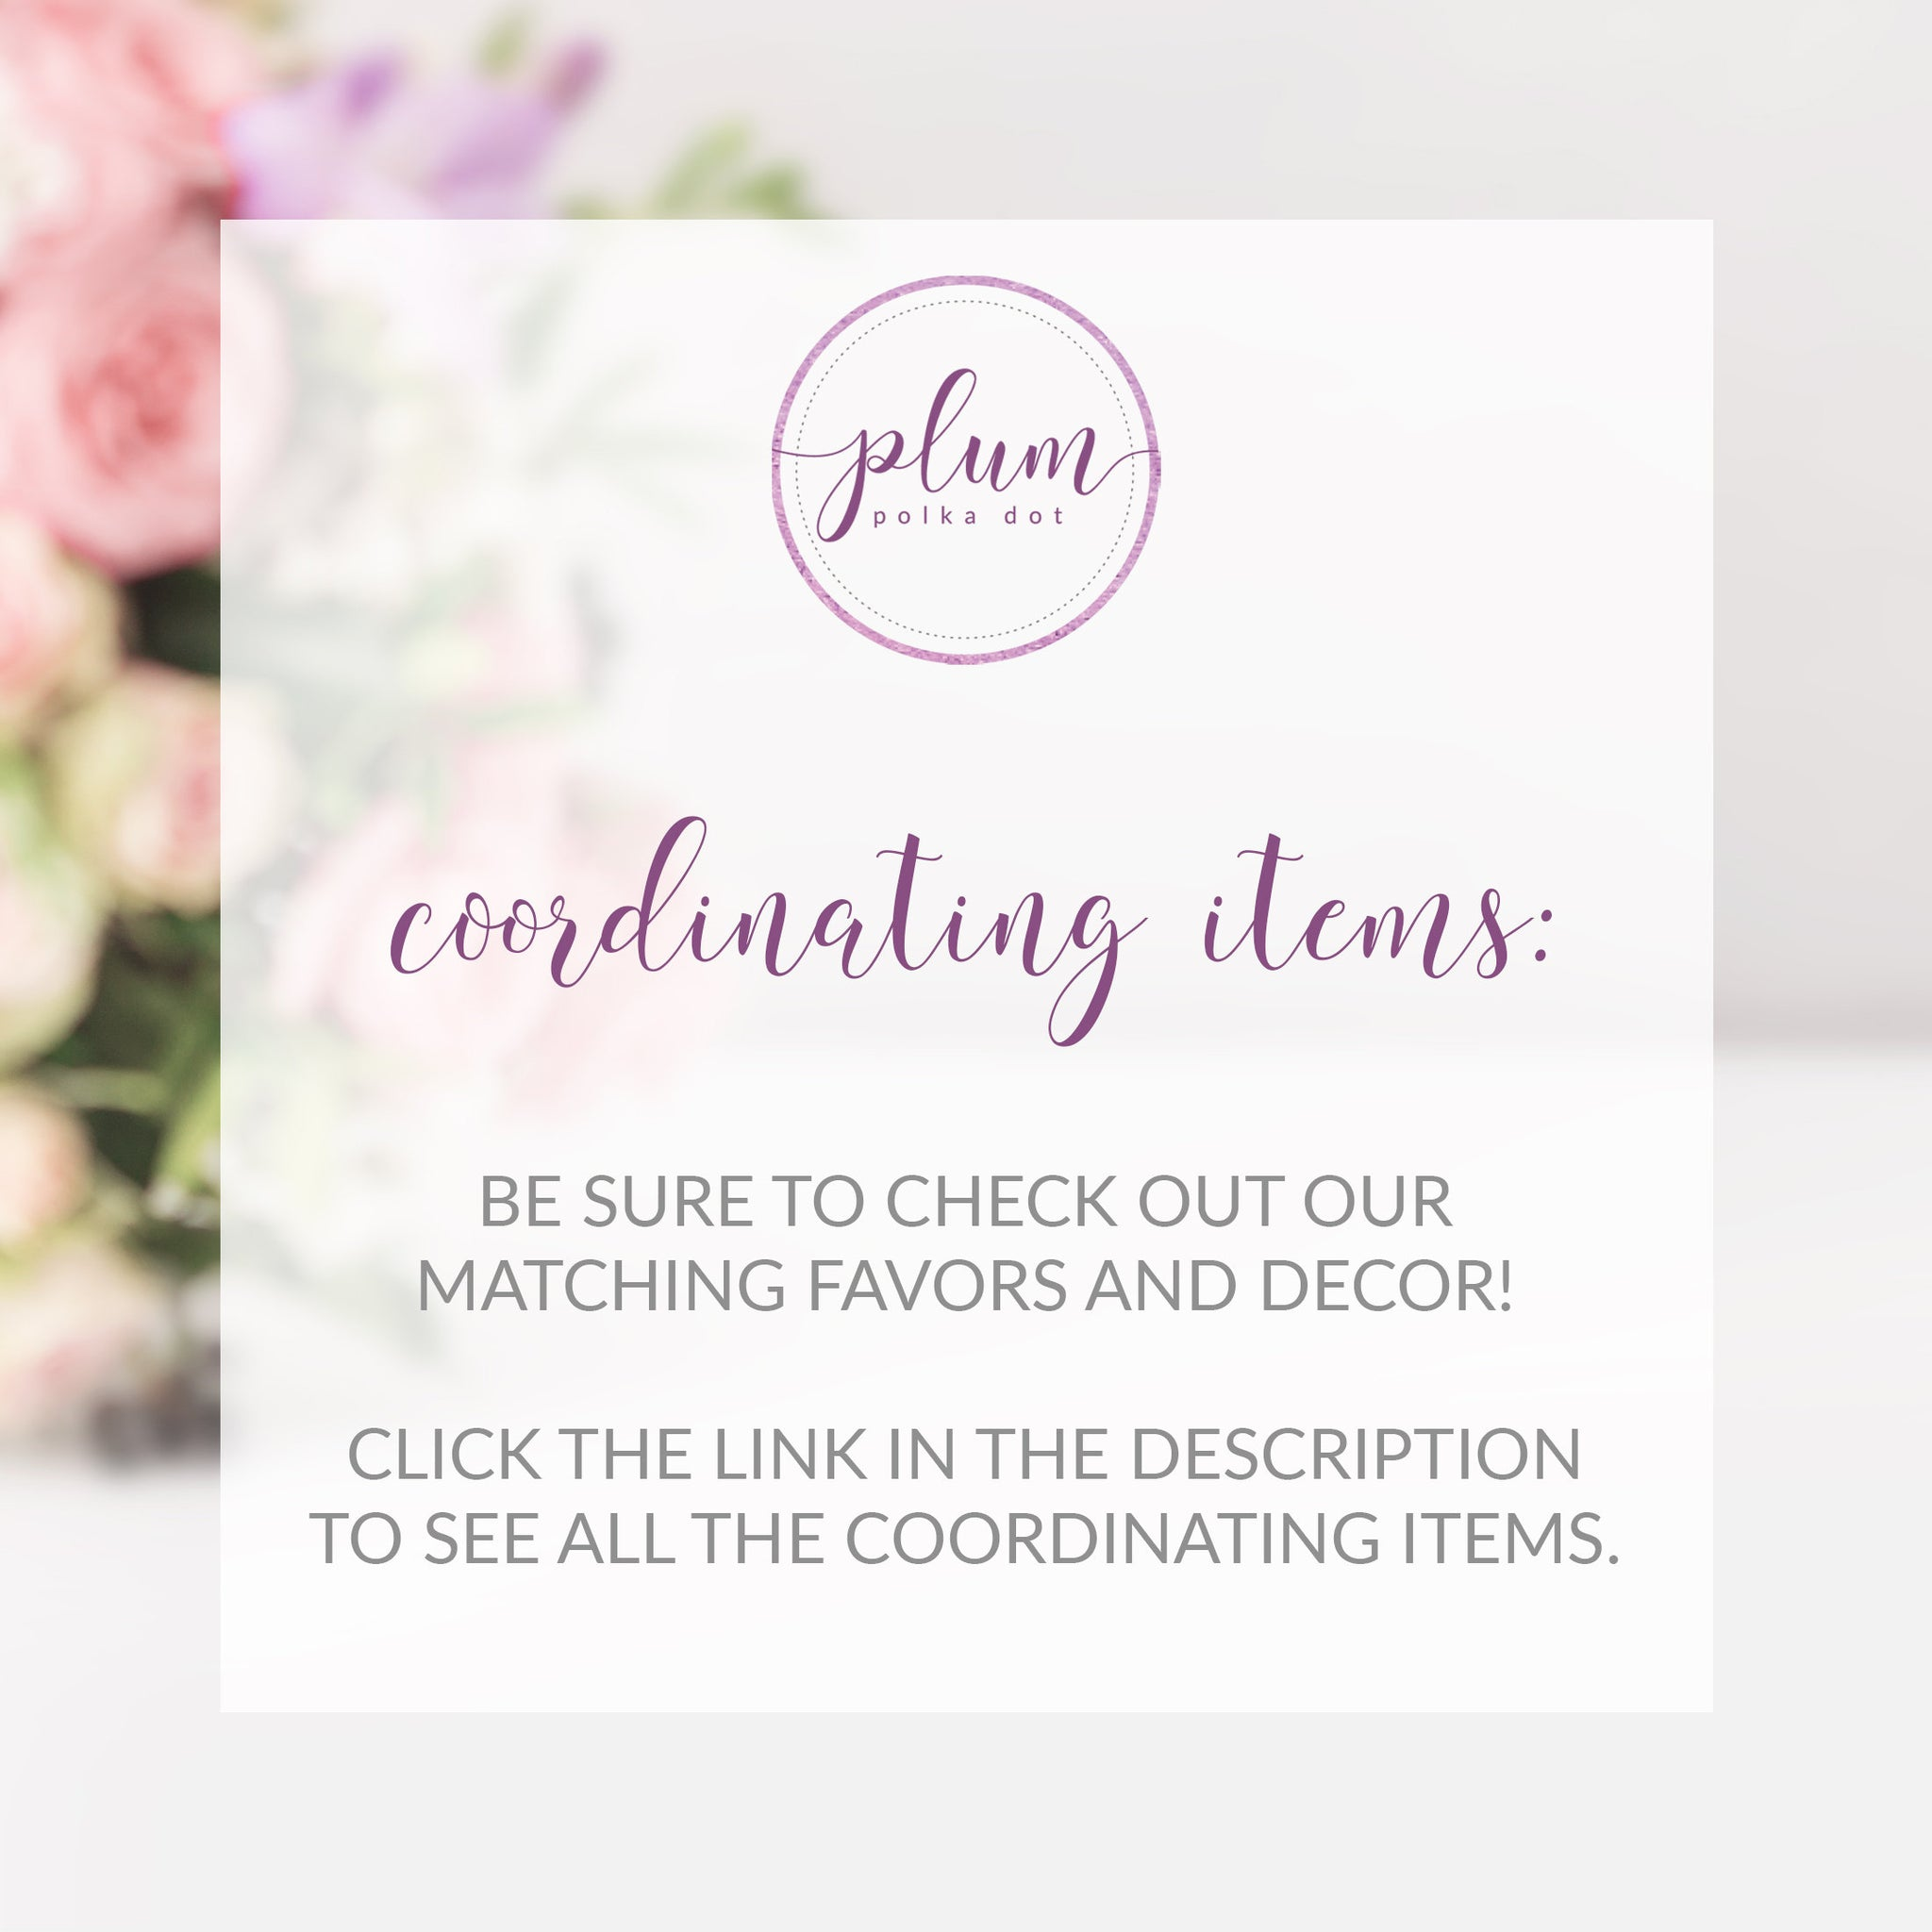 Blush Pink Floral Cards and Gifts Printable Sign INSTANT DOWNLOAD, Bridal Shower, Baby Shower, Wedding Decorations and Supplies - FR100 - @PlumPolkaDot